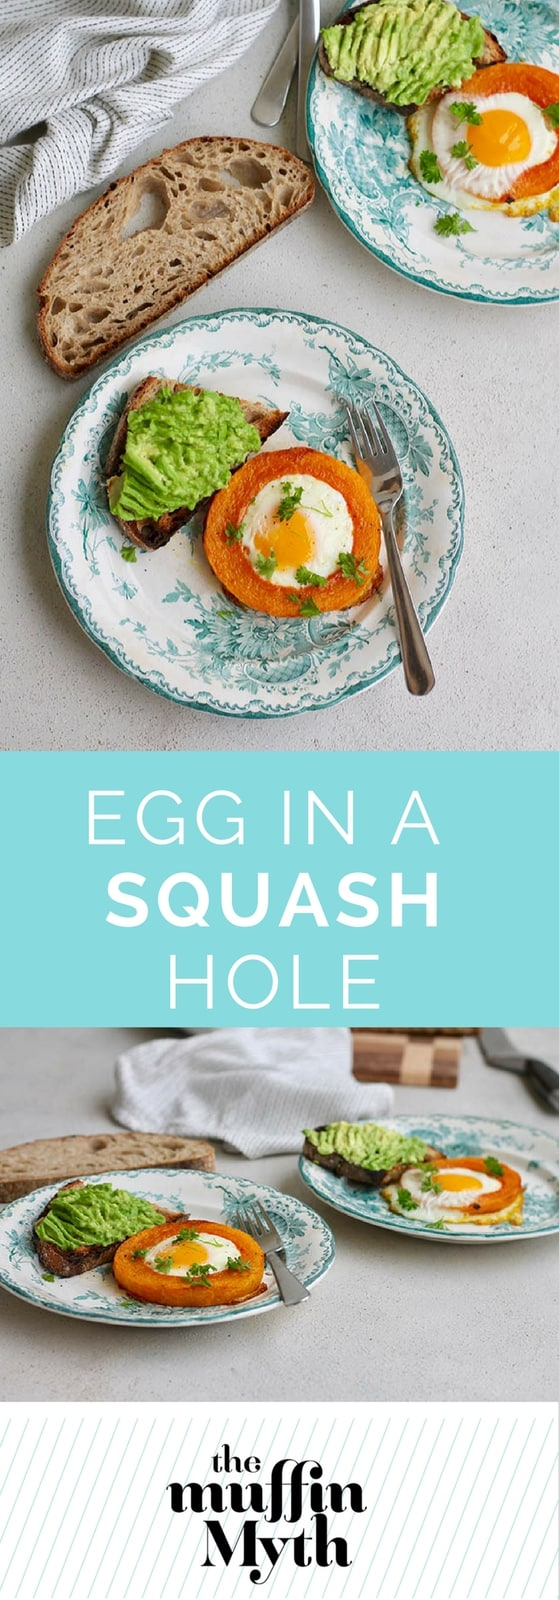 Egg In A Squash Hole! Eggs are baked into rings of squash for a fun, delicious, and healthy breakfast the whole family will love.  #eggs #glutenfree #vegetarian #breakfast